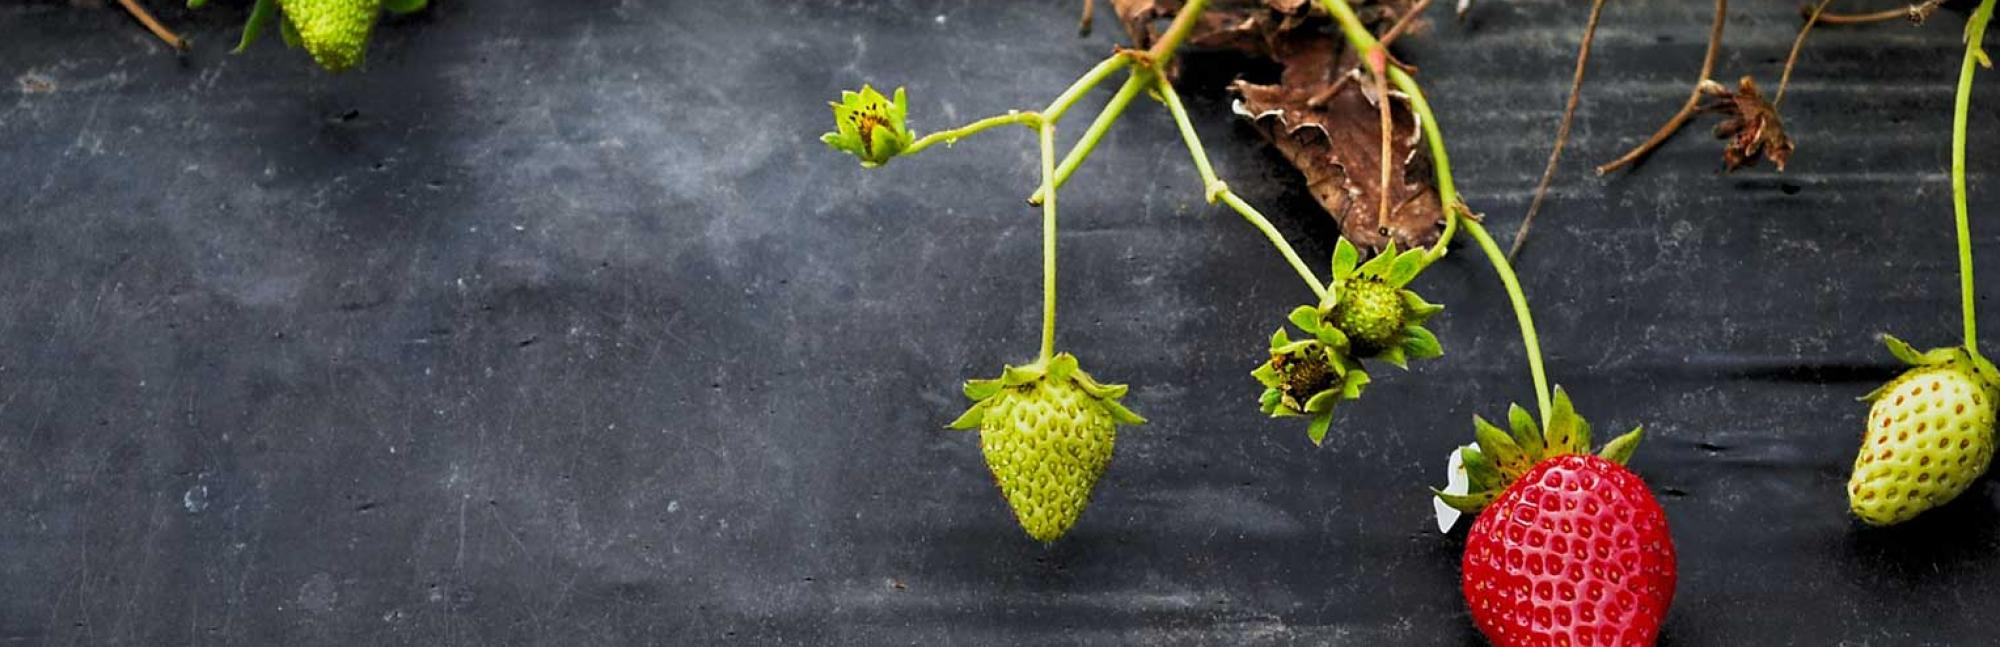 Strawberries growing on grey background